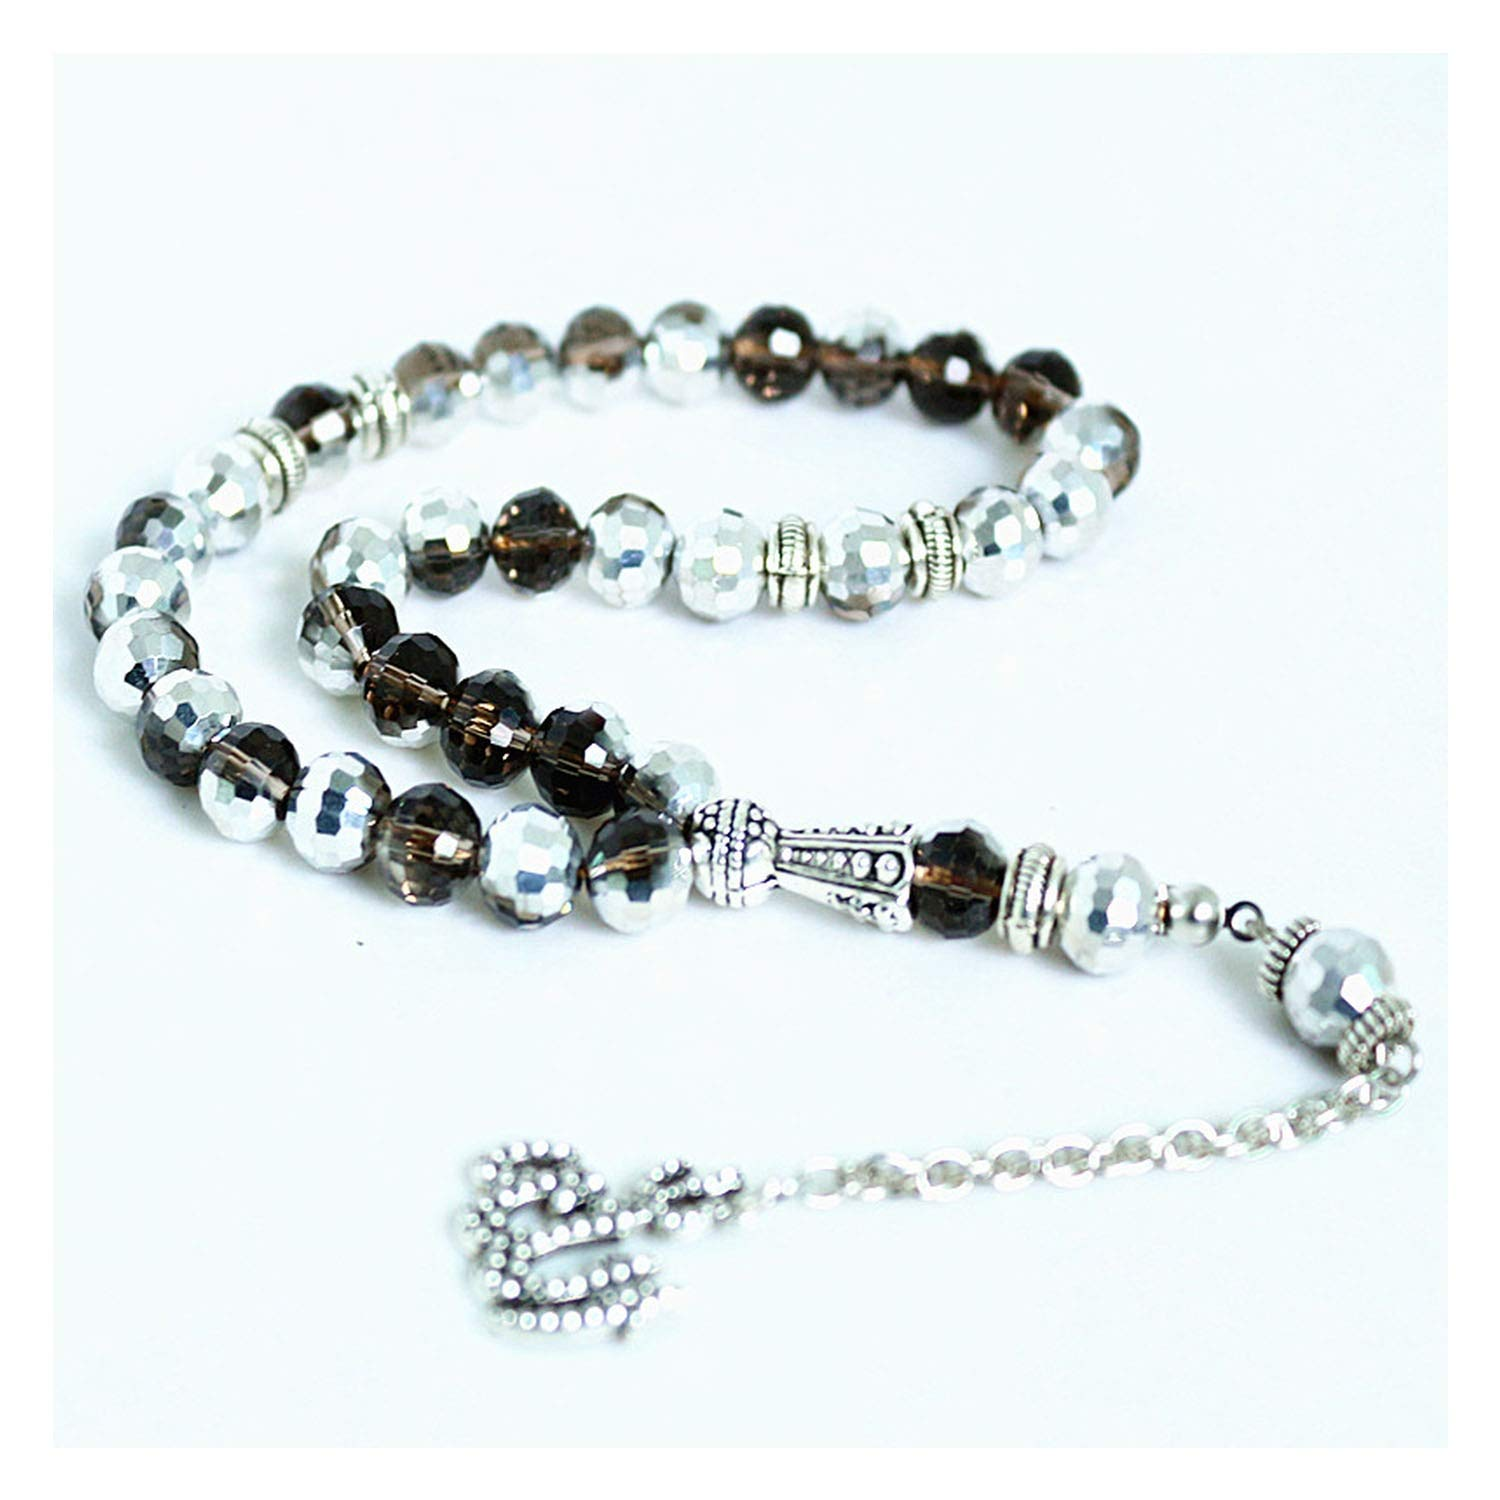 monicaexclusive 8mm Silver Plated Crystal Round 33 Prayer Beads Islamic Muslim Tasbih Allah Mohammed Rosary/&Women